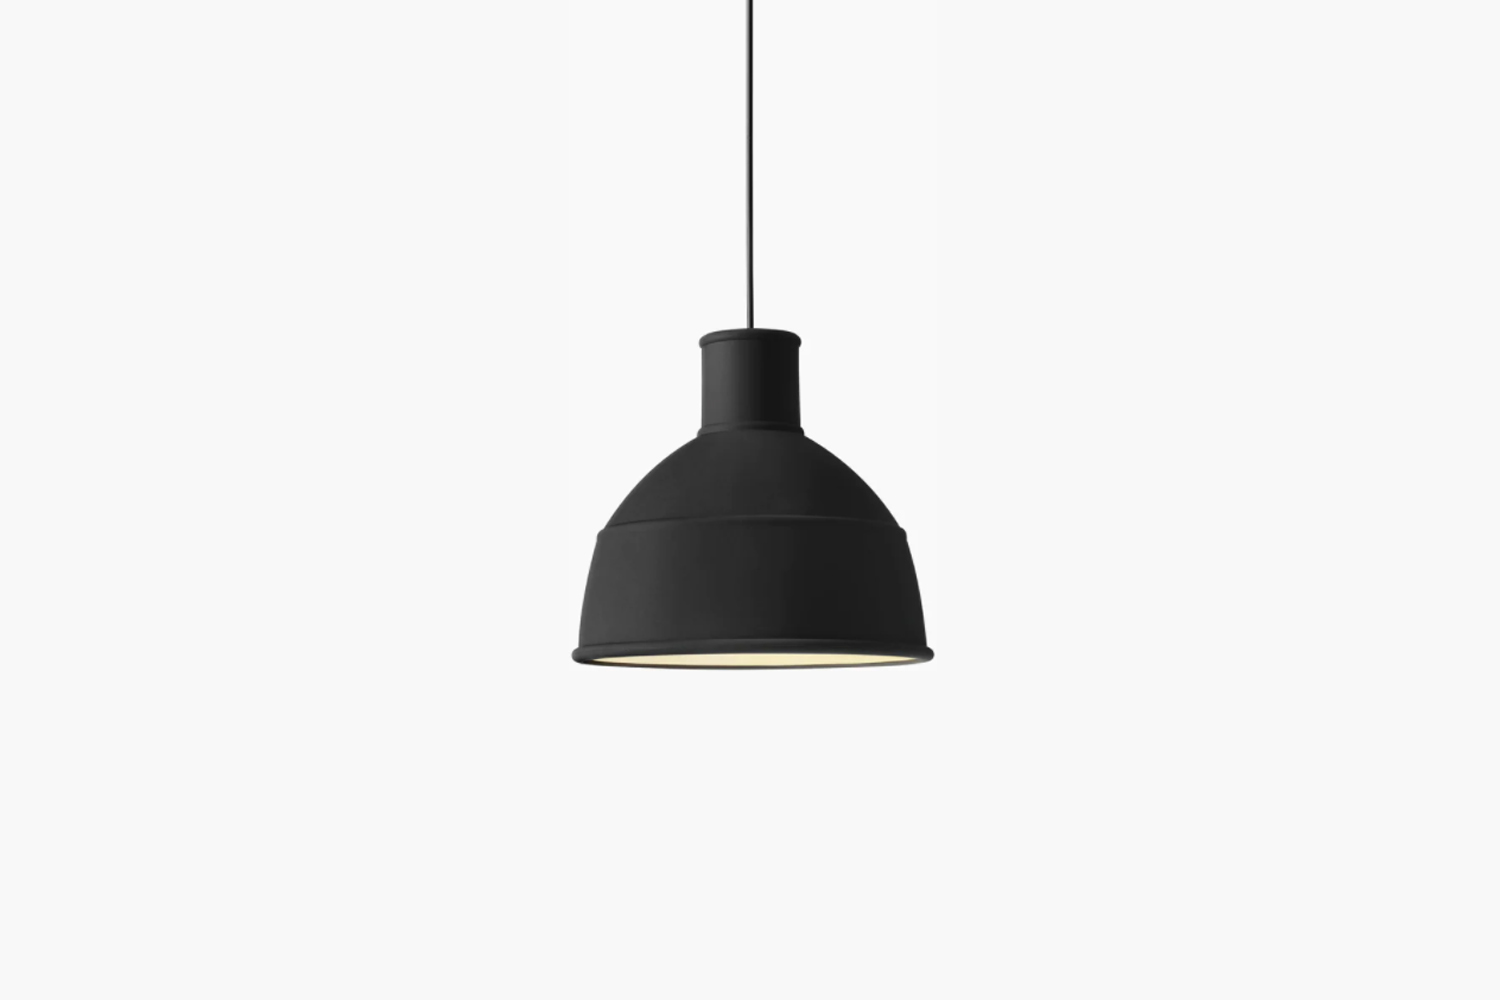 The Muuto Unfold Pendant is made of colored silicone for $9 at Design Within Reach.